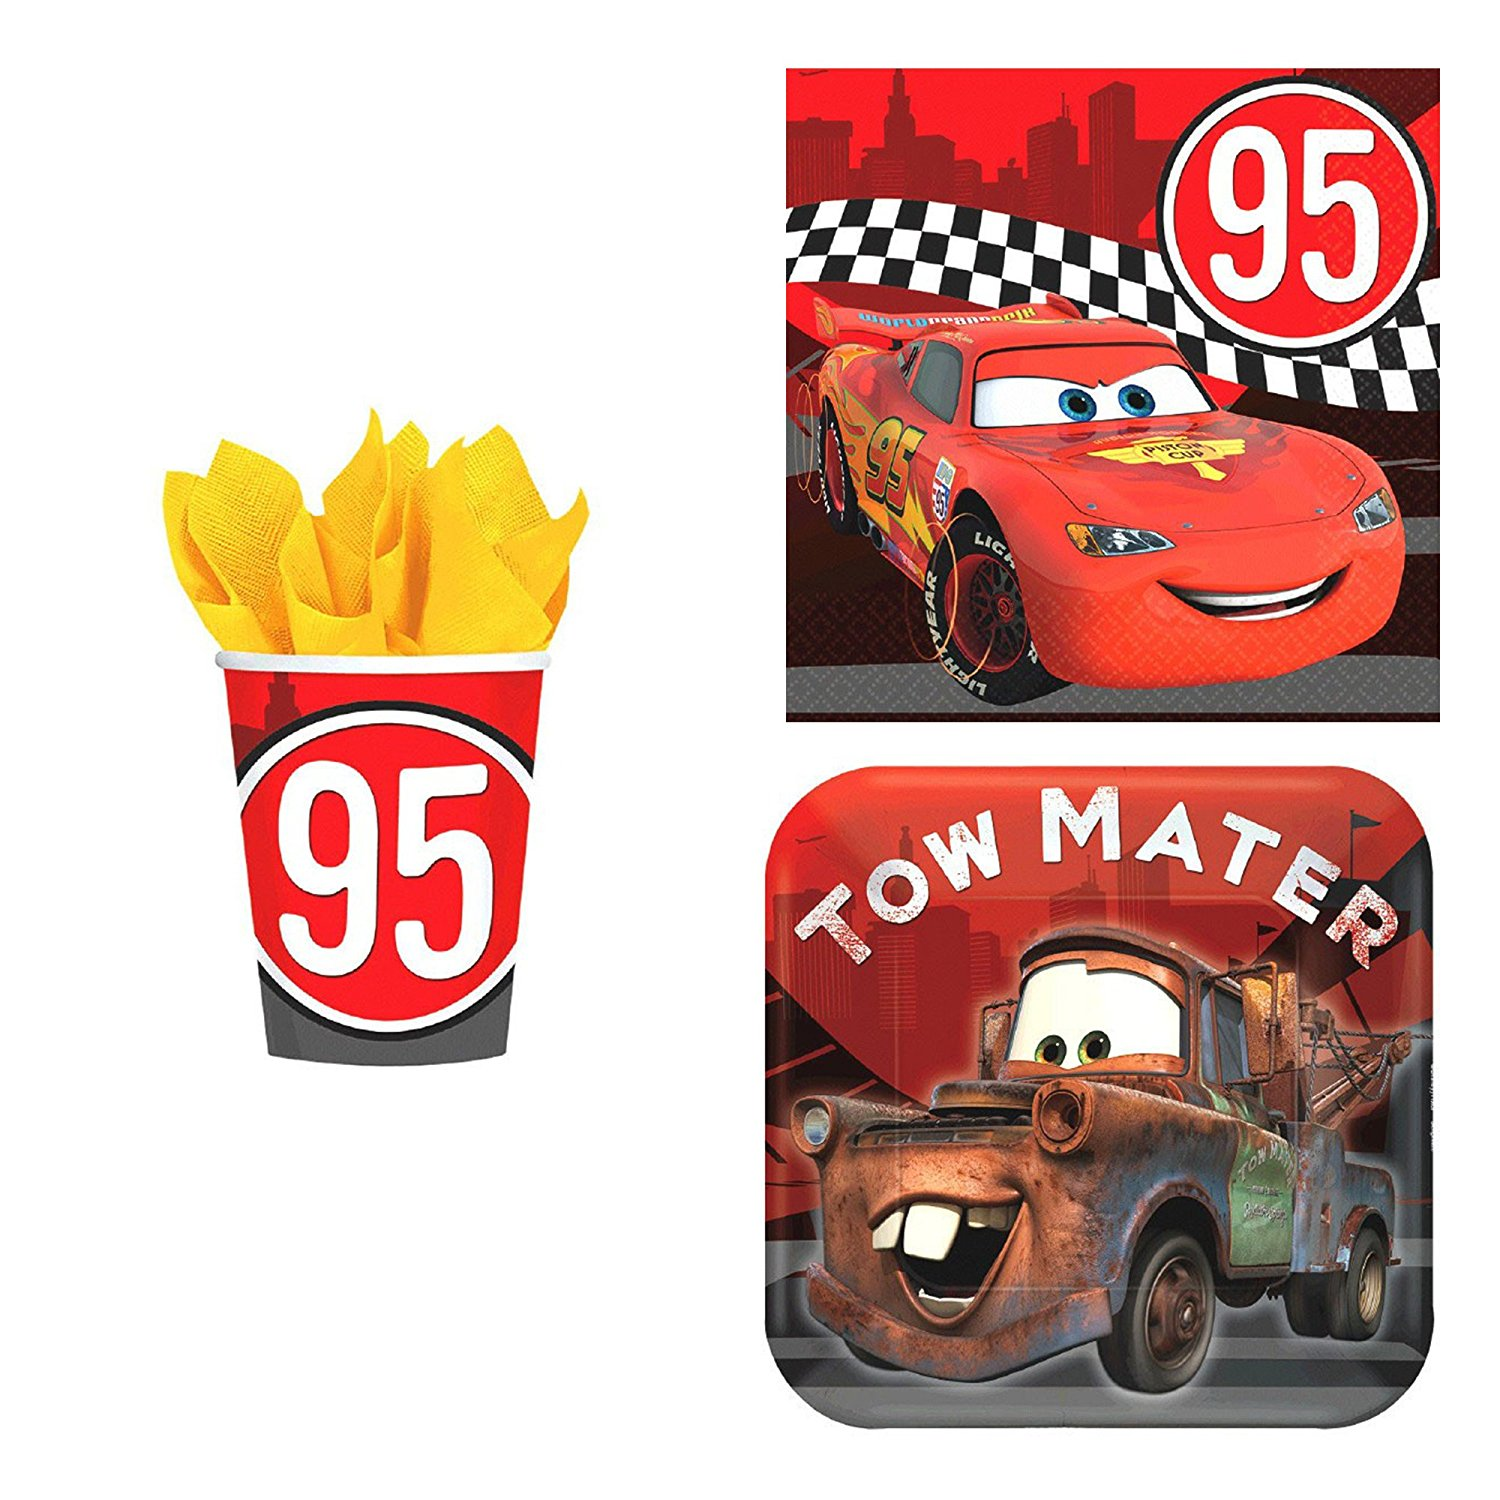 Disney Cars Formula Racer Birthday Party Supplies Kit: Plates, Napkins, and Cups for 16